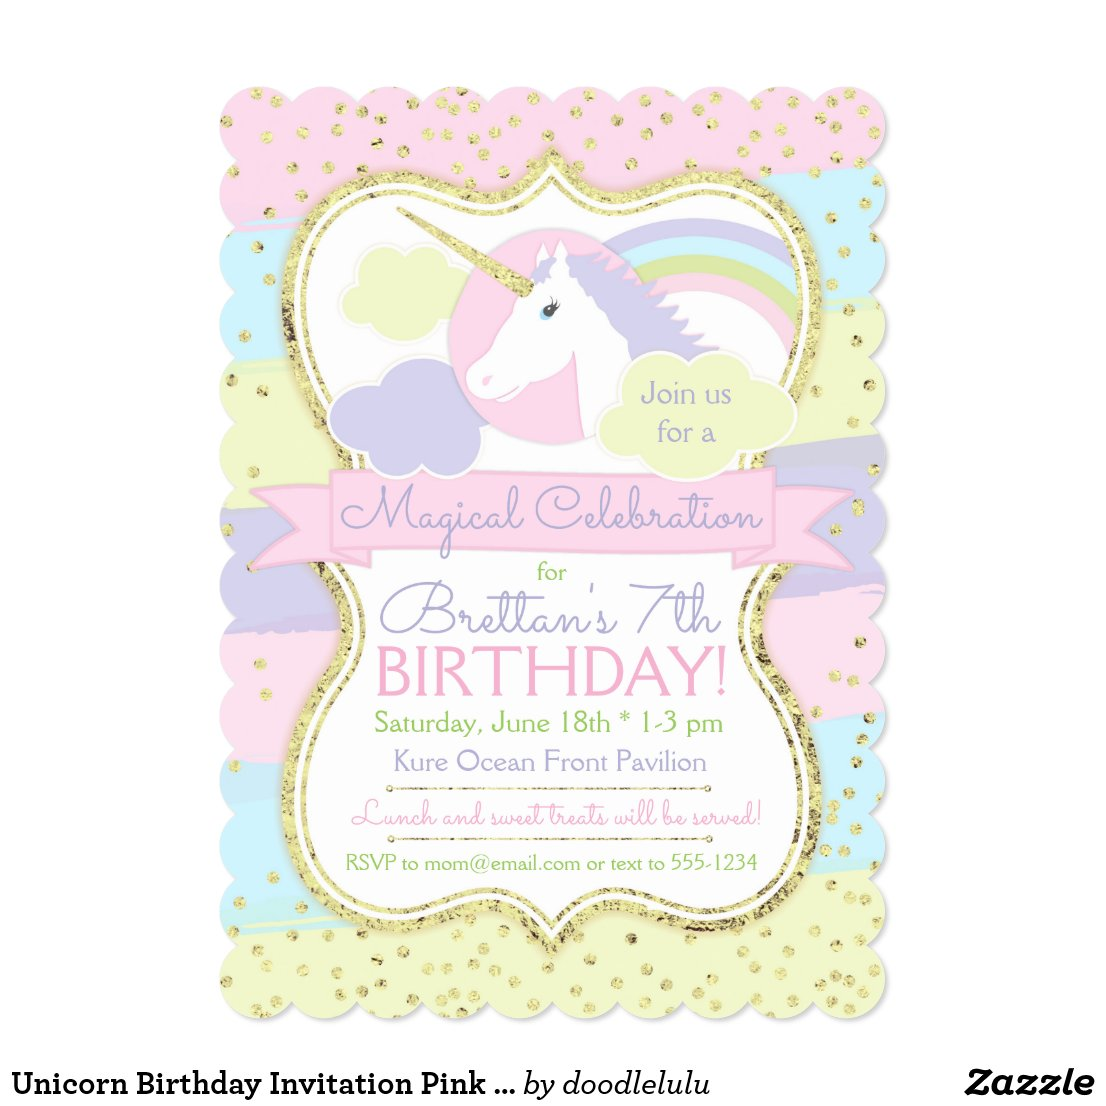 Unicorn Birthday Invitation Pink Purple Gold